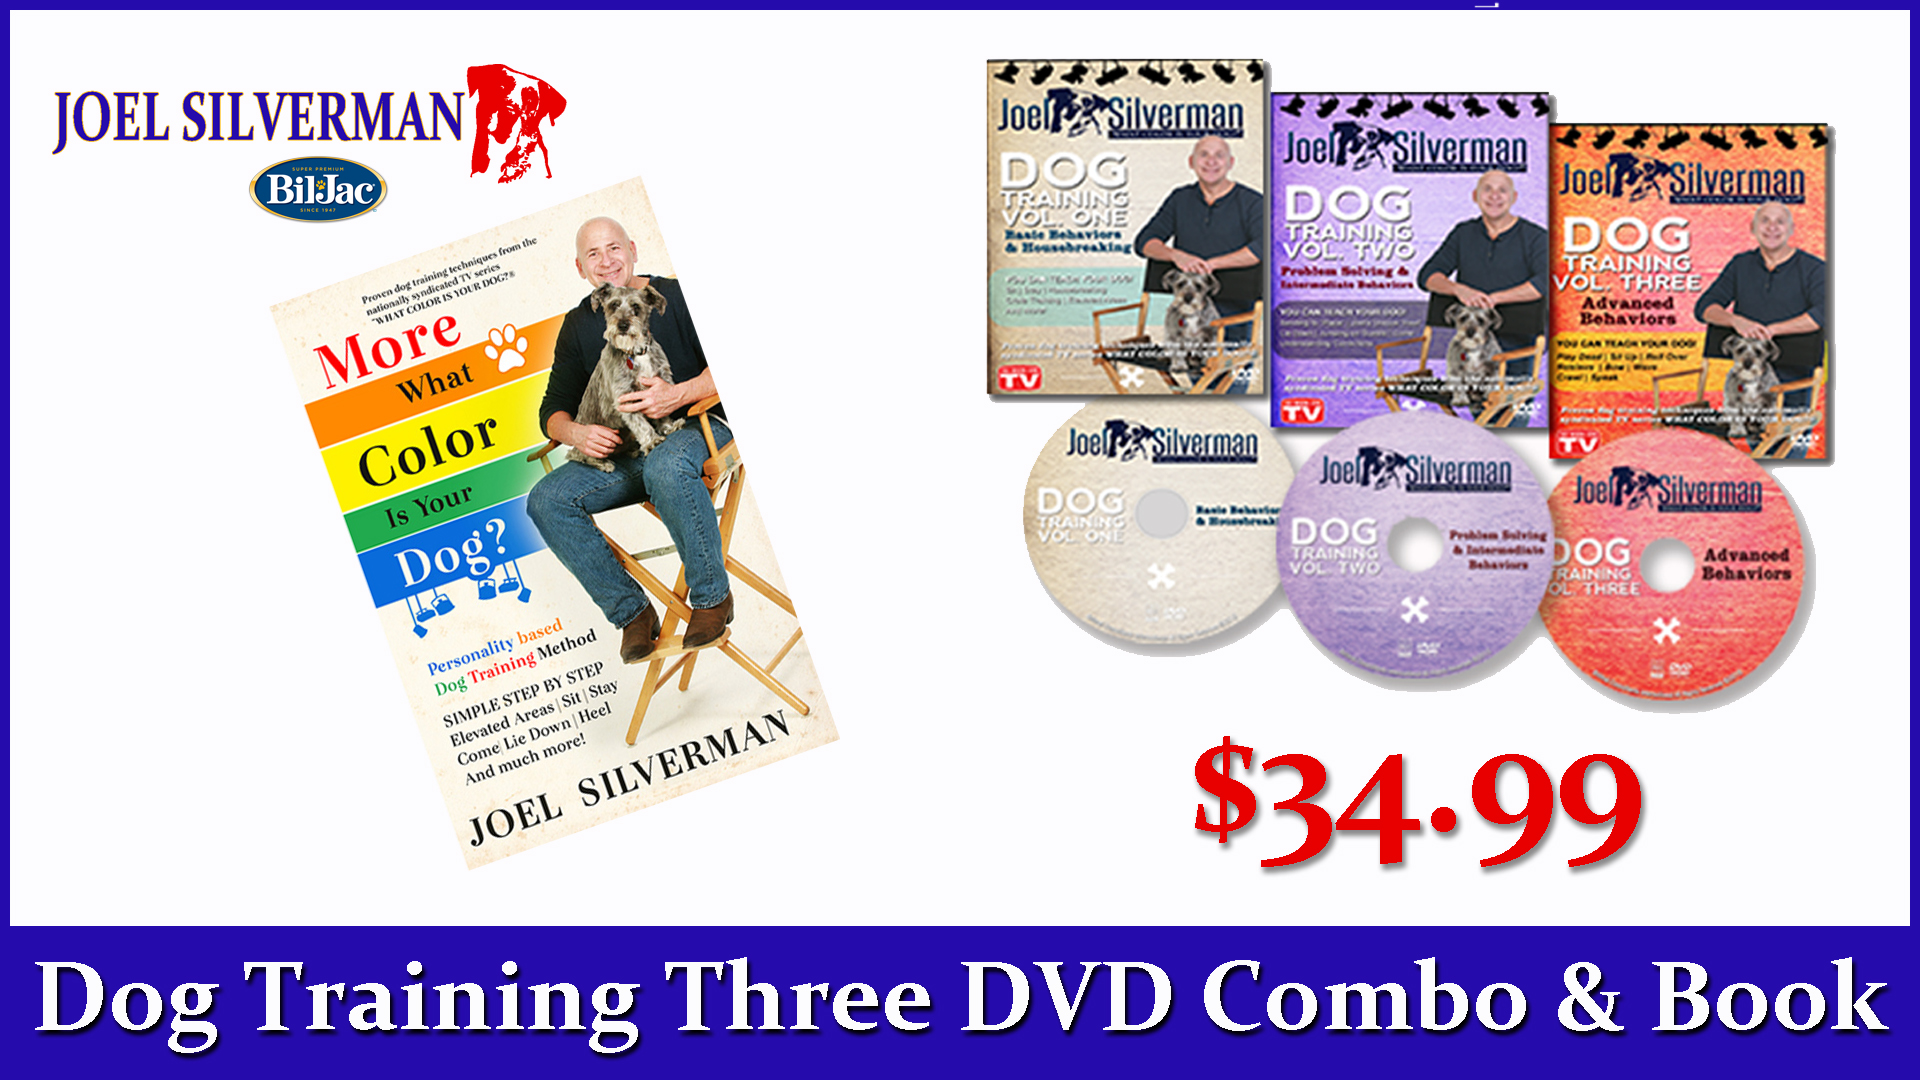 Joel Silverman's 3 DVDs – More What Color Is Your Dog? Book